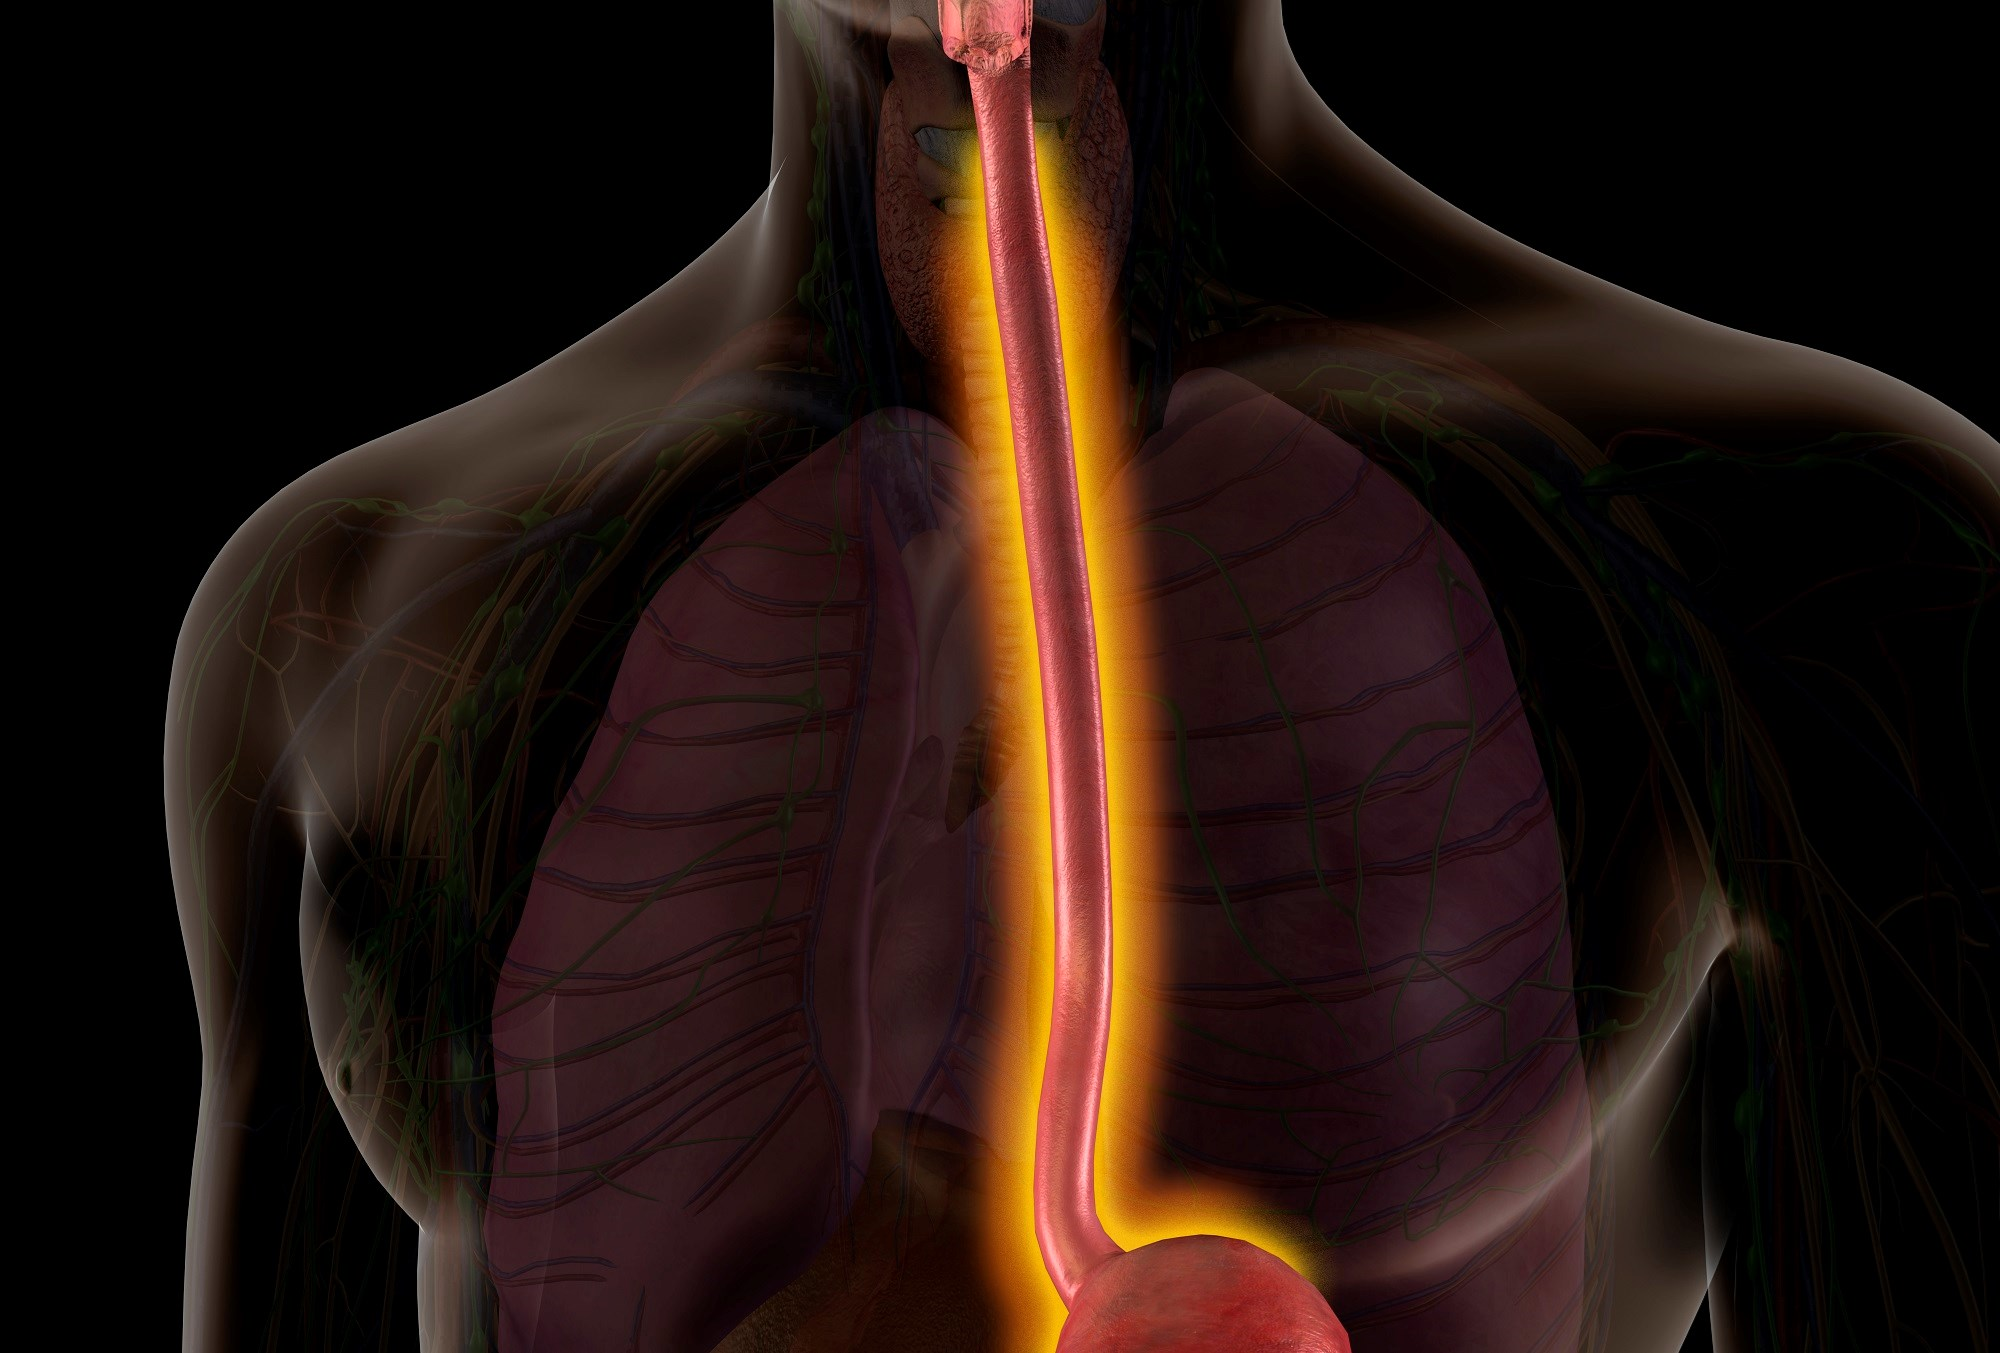 Fewer Complications Found With Hybrid Surgery for Esophageal Cancer